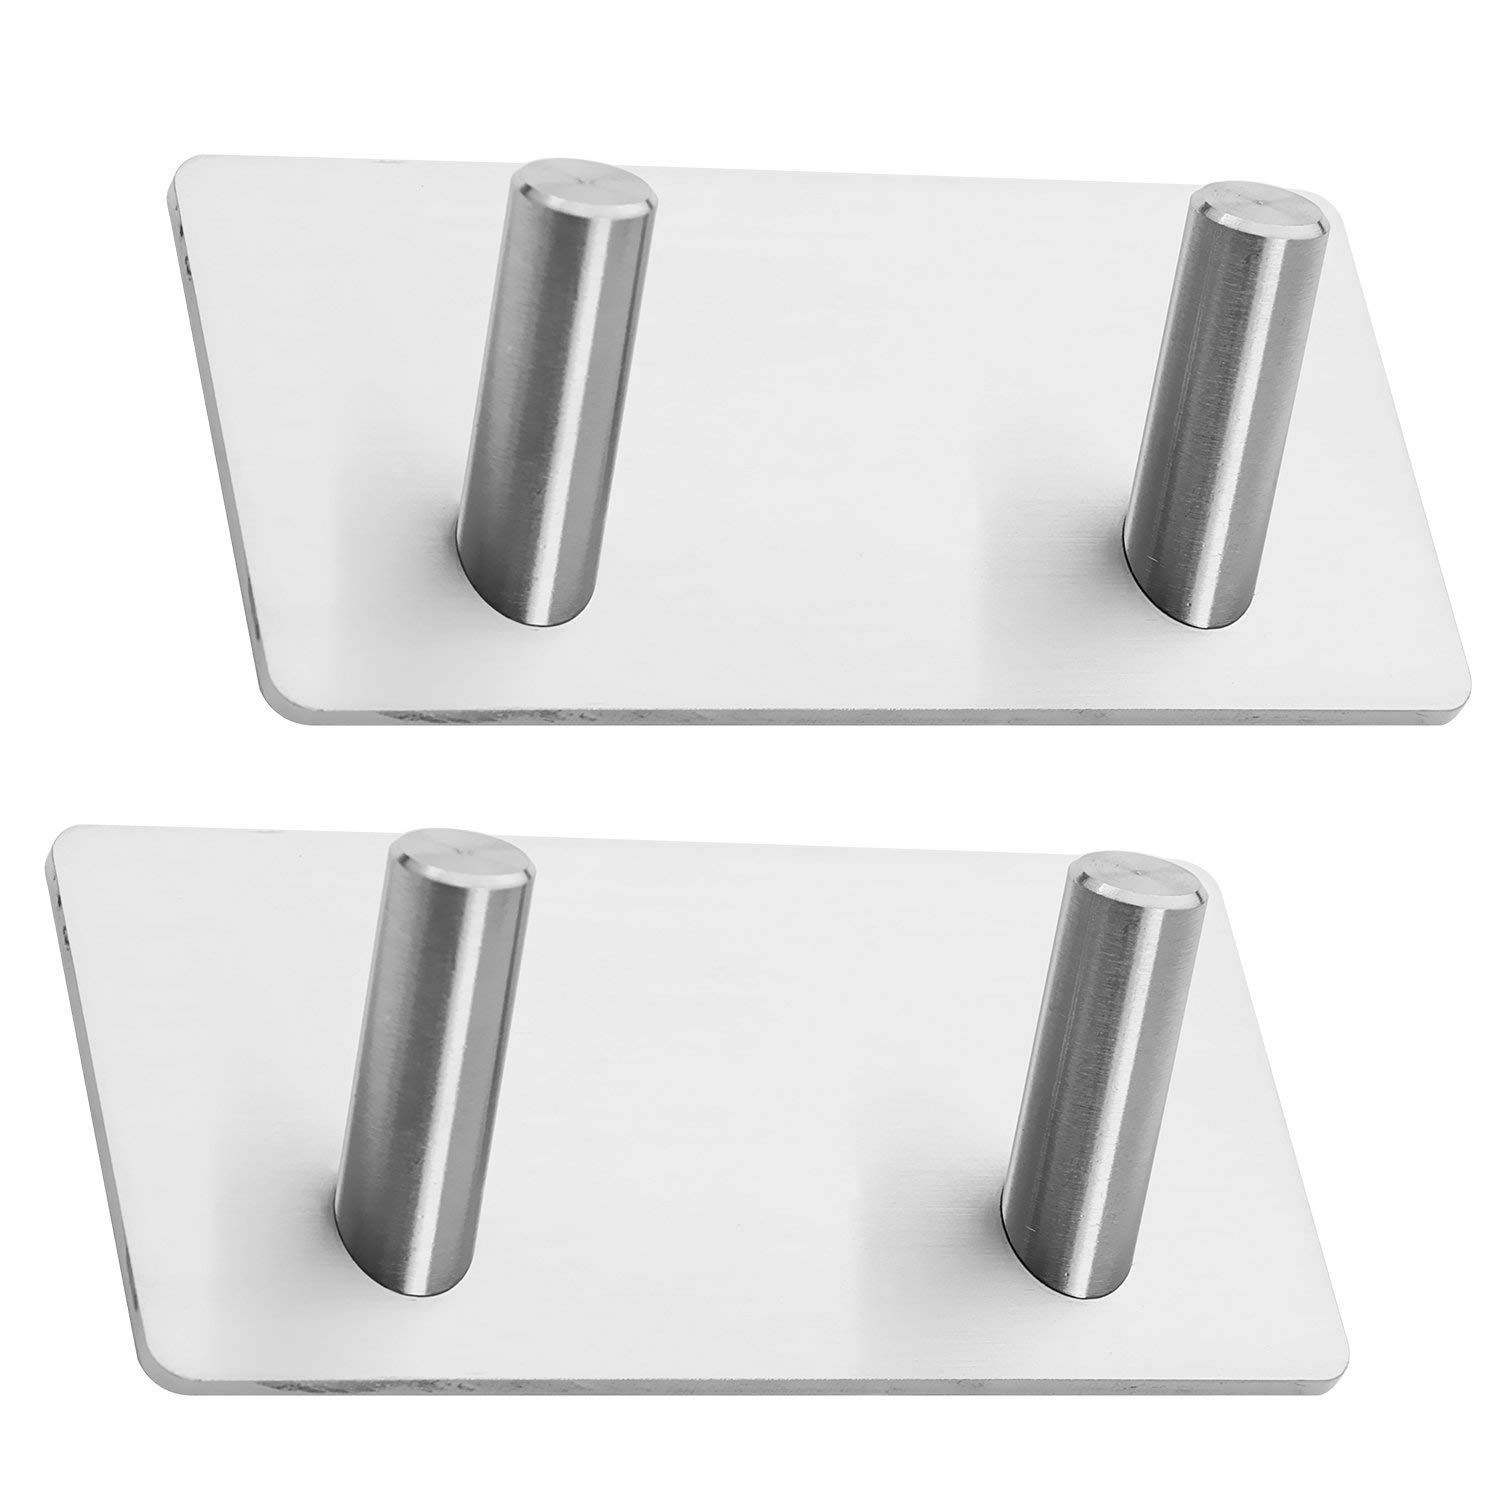 2 Pack Of Self Adhesive Hooks, Towel Rail, Hat Towel Robe Coat Stick-up Stainless Steel Hanger For Kitchen Bathrooms